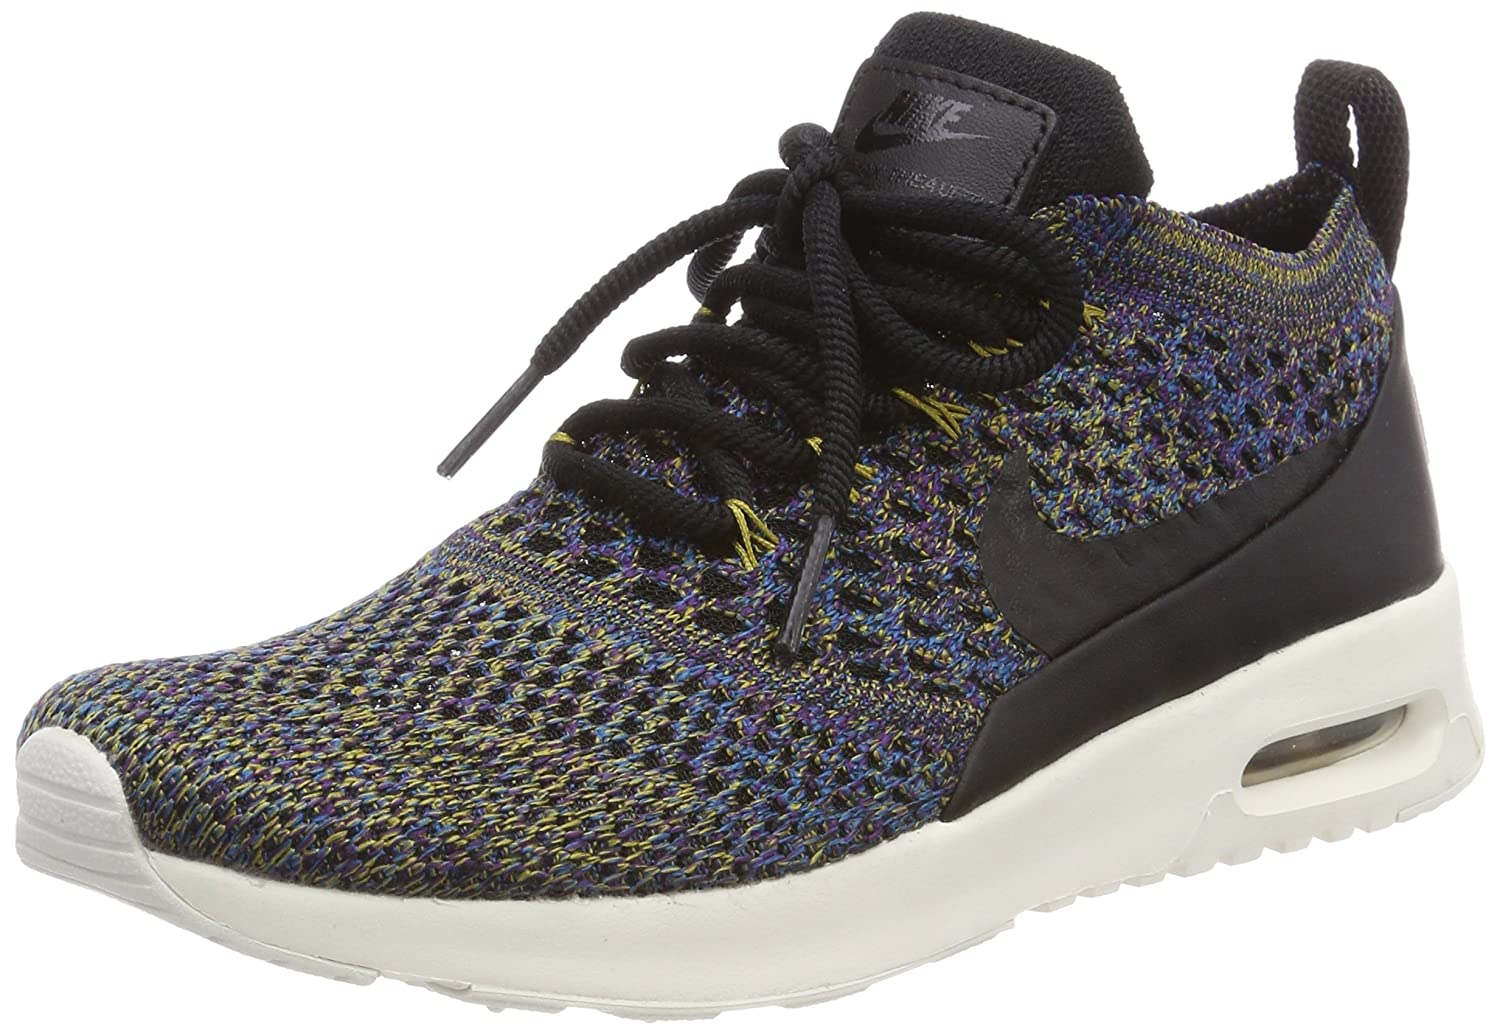 Nike Women's Air Max Thea Ultra Flyknit Low Top Sneakers